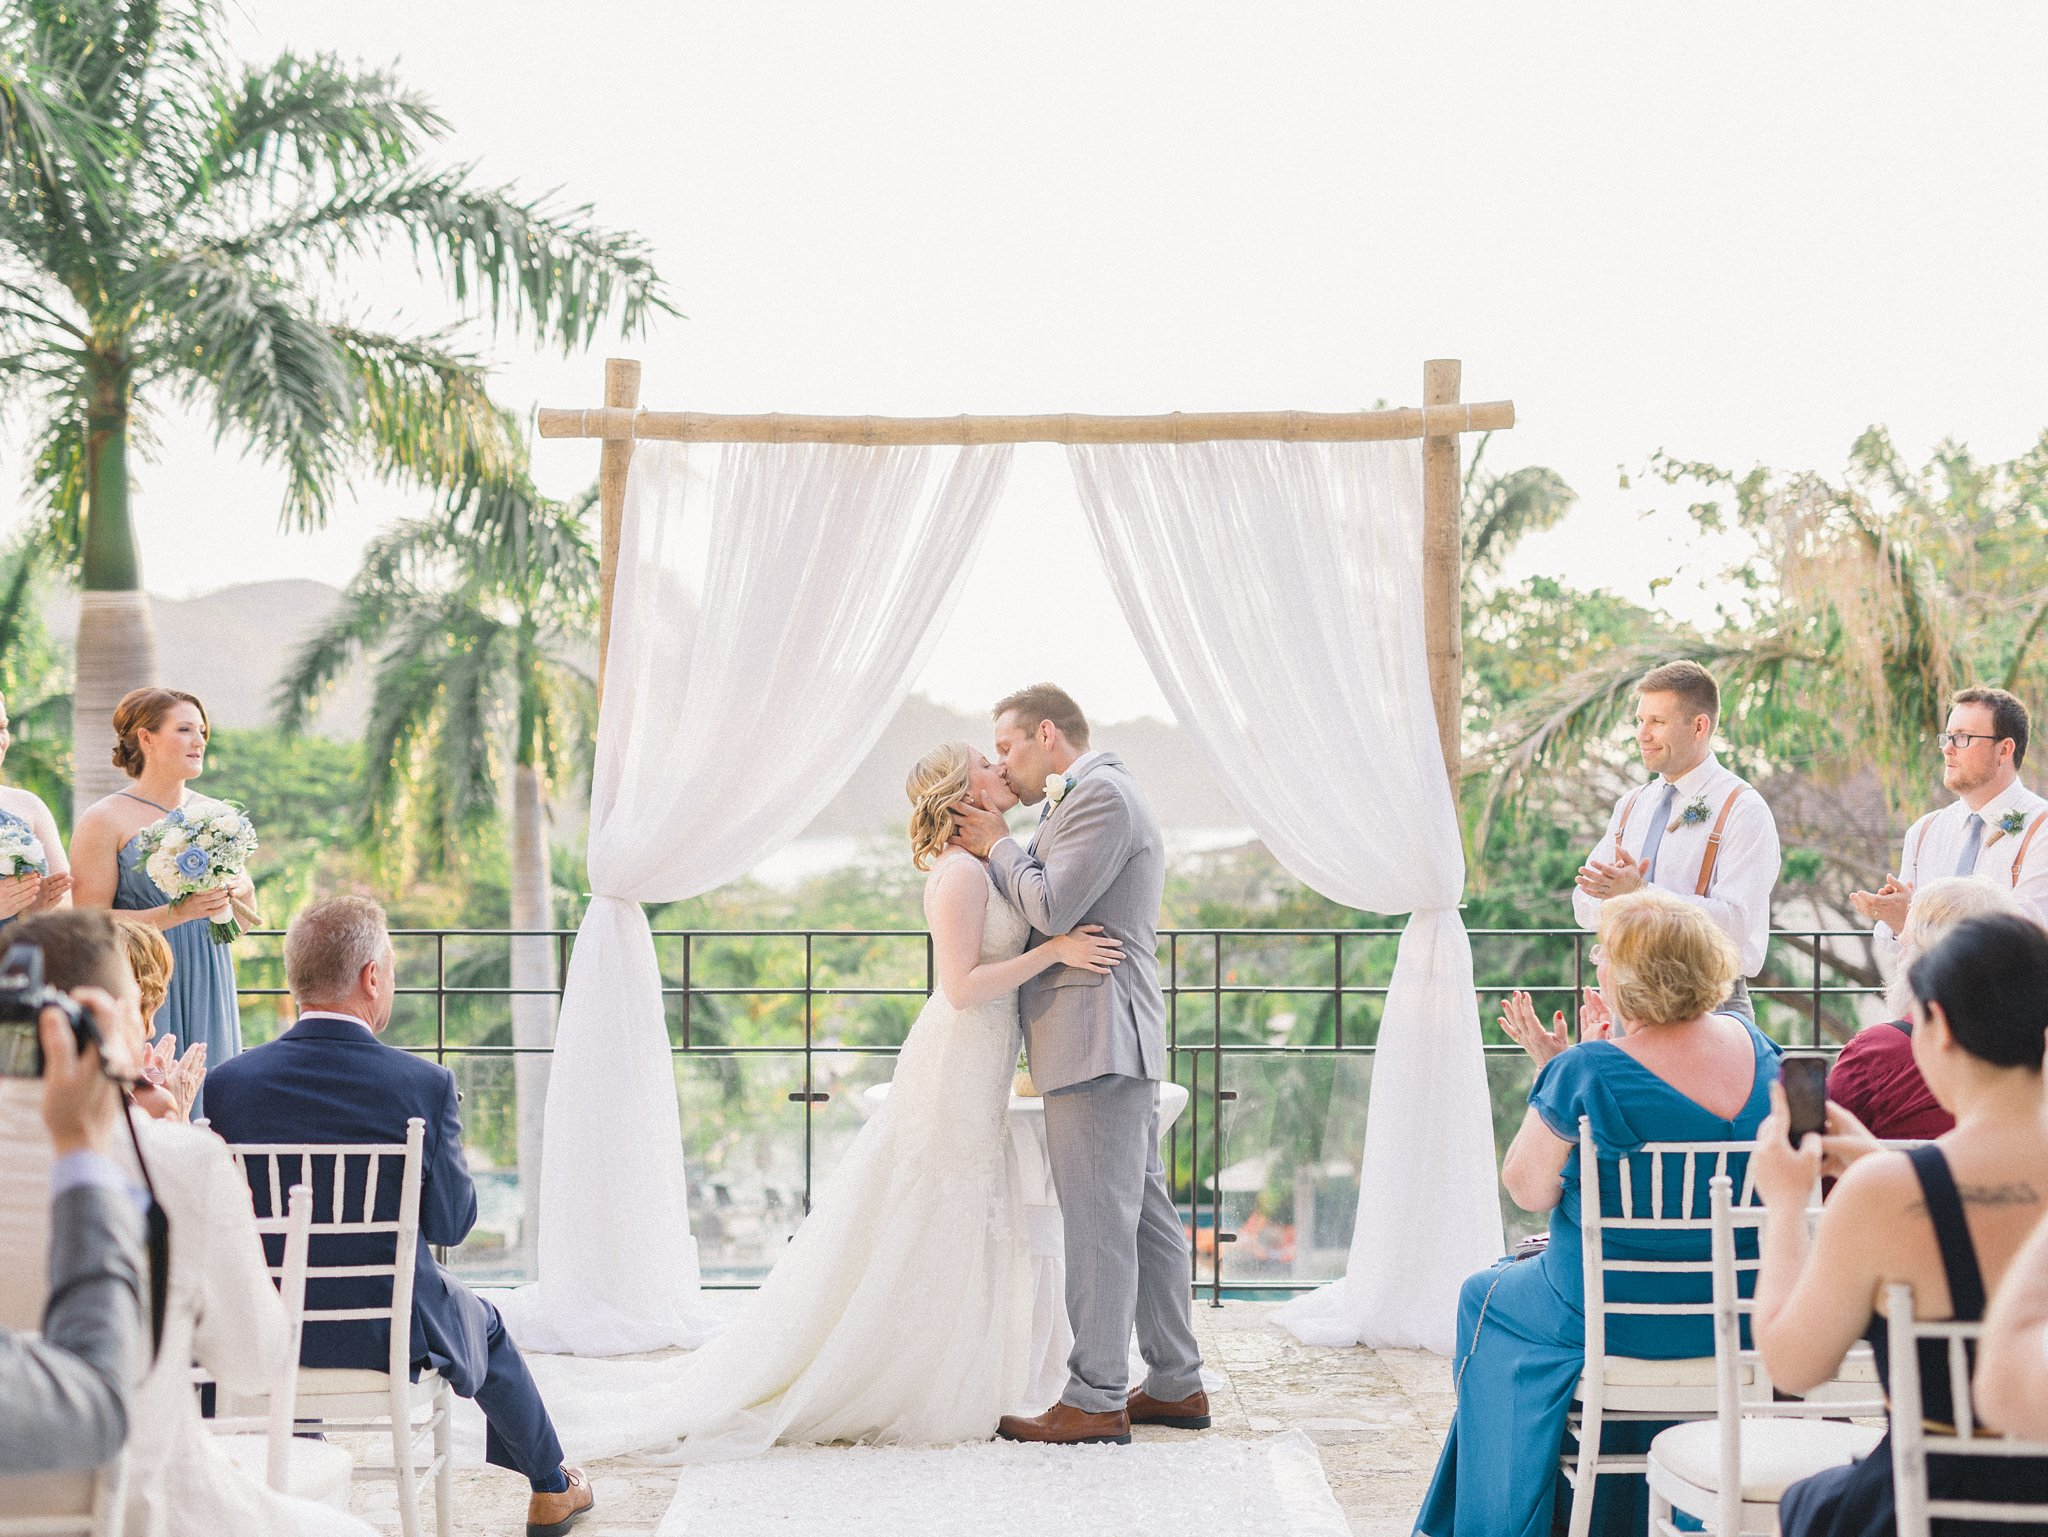 First Kiss Ceremony Costa Rica Destination Wedding Guanacaste Dreams Resort